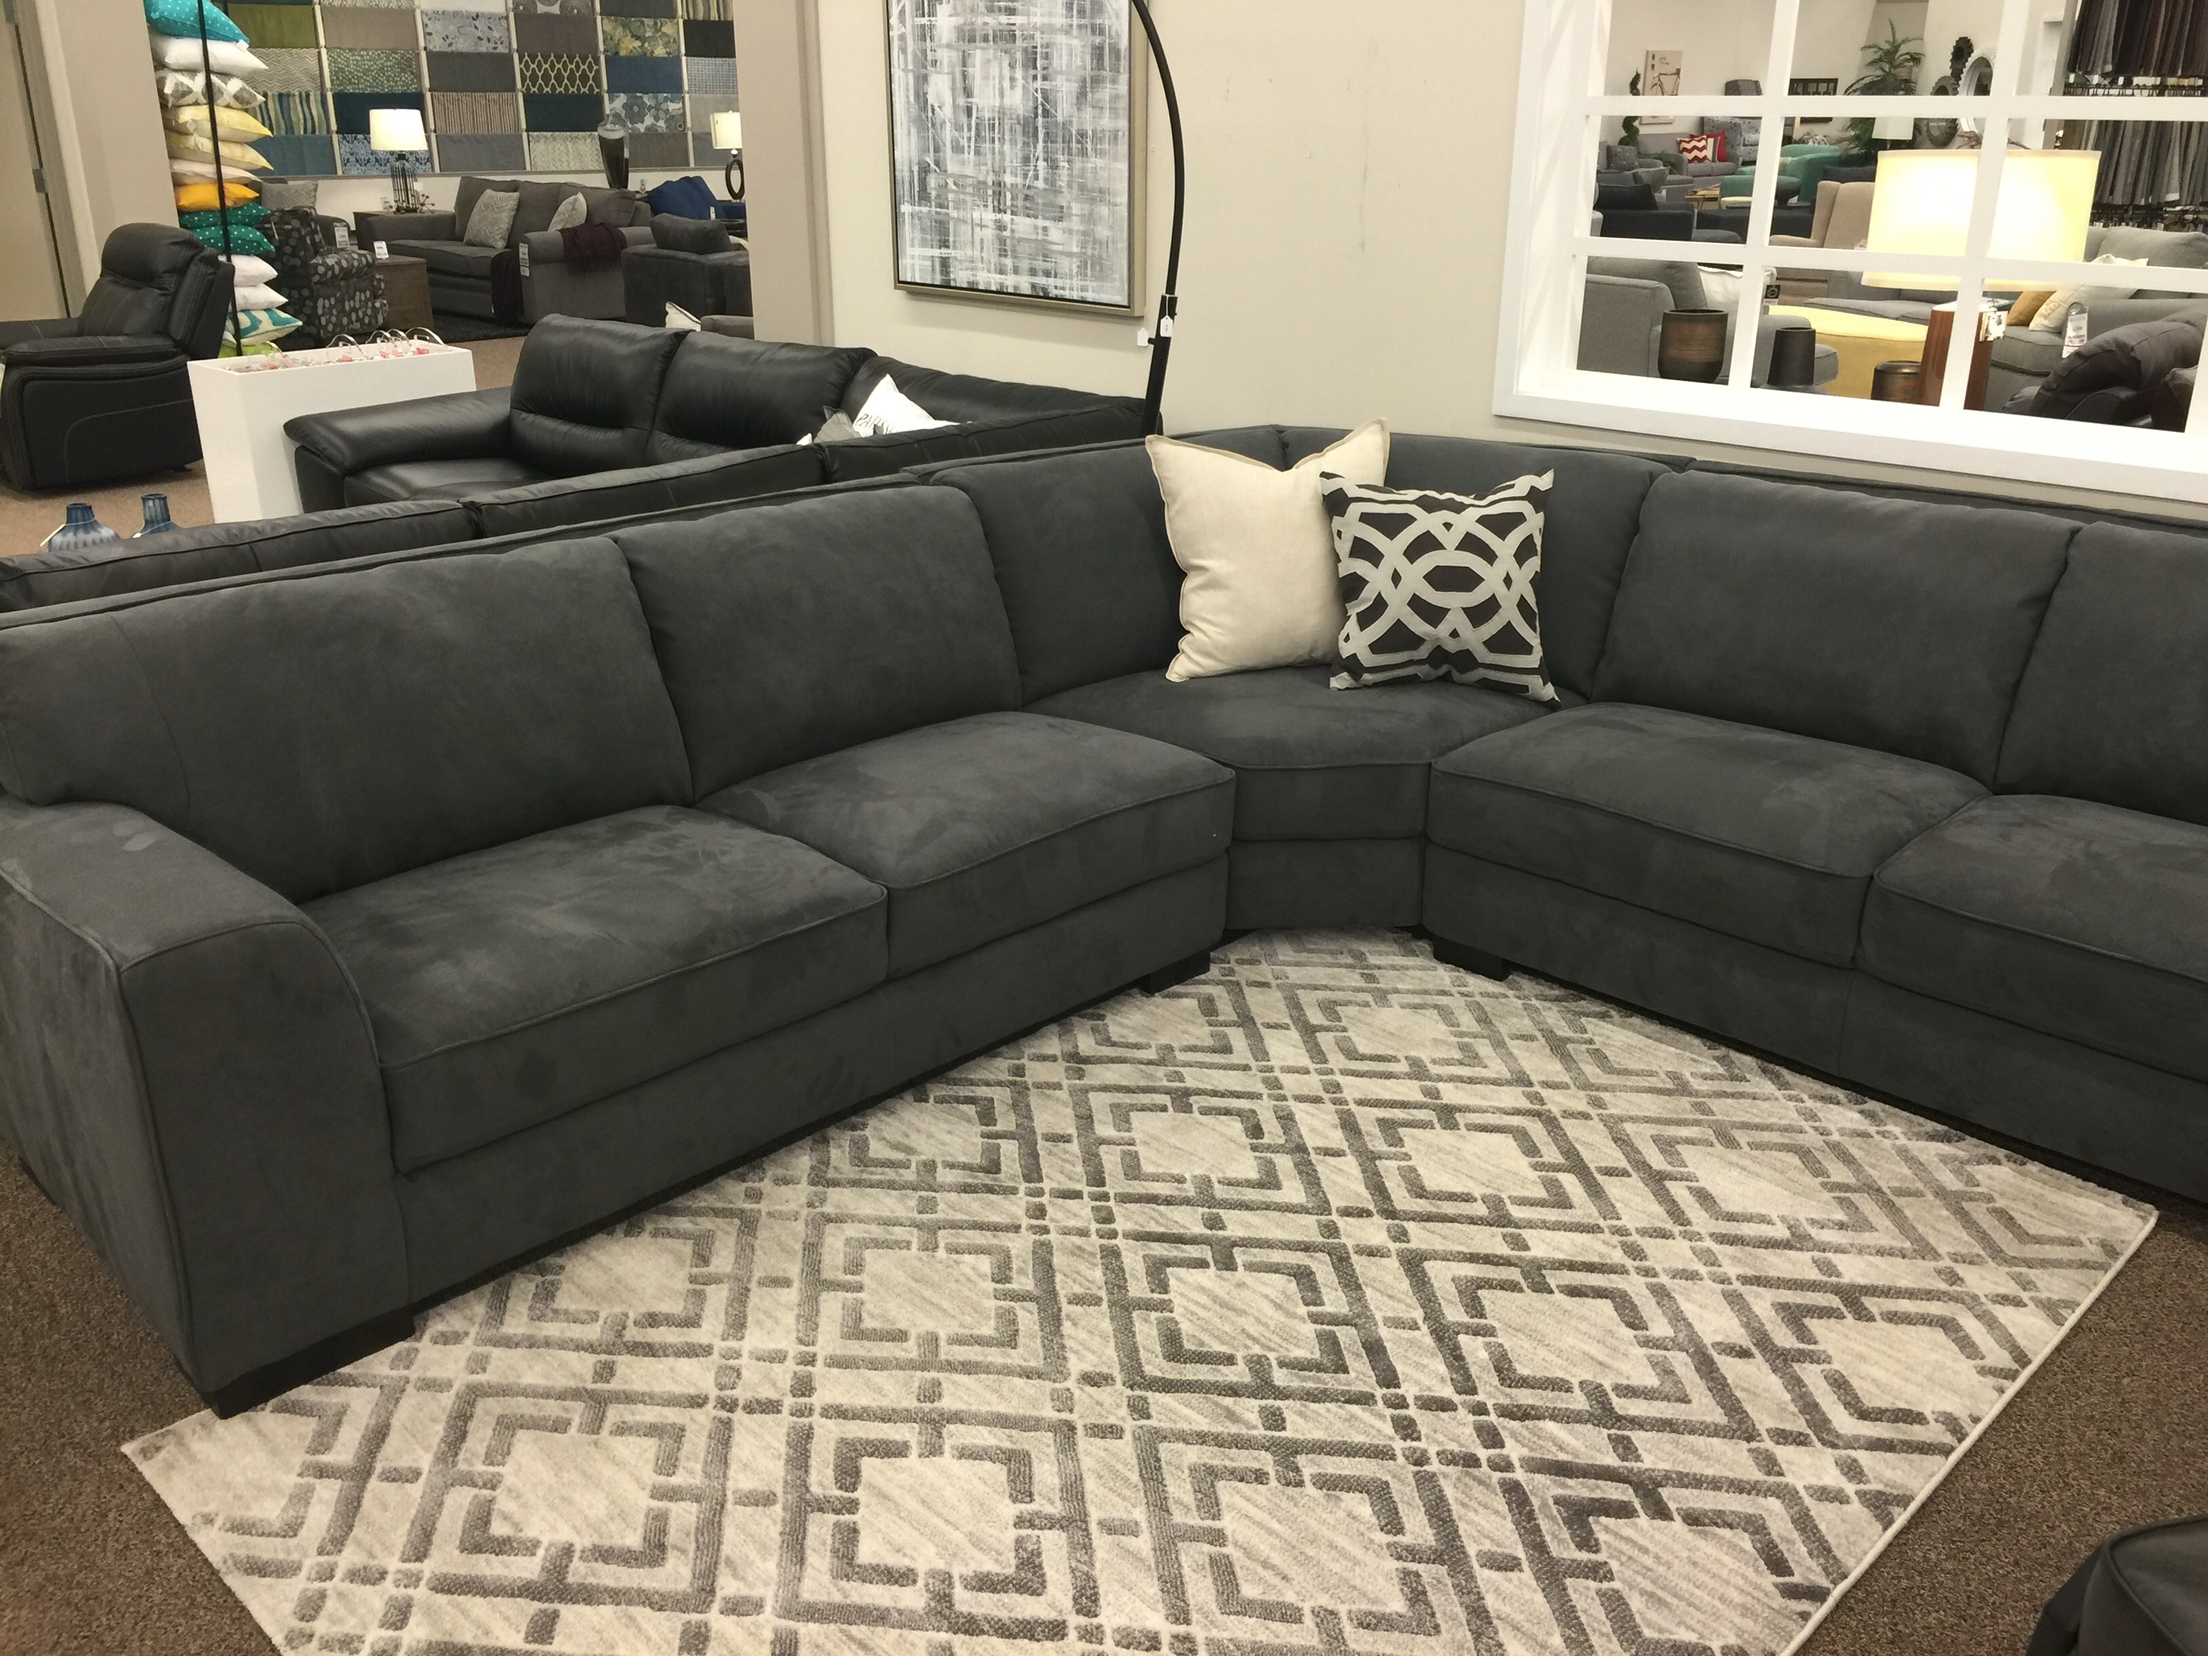 This Is All The Comfort We Can Fit Into A Price Of $1999! The Kellen In Nova Scotia Sectional Sofas (Image 9 of 10)